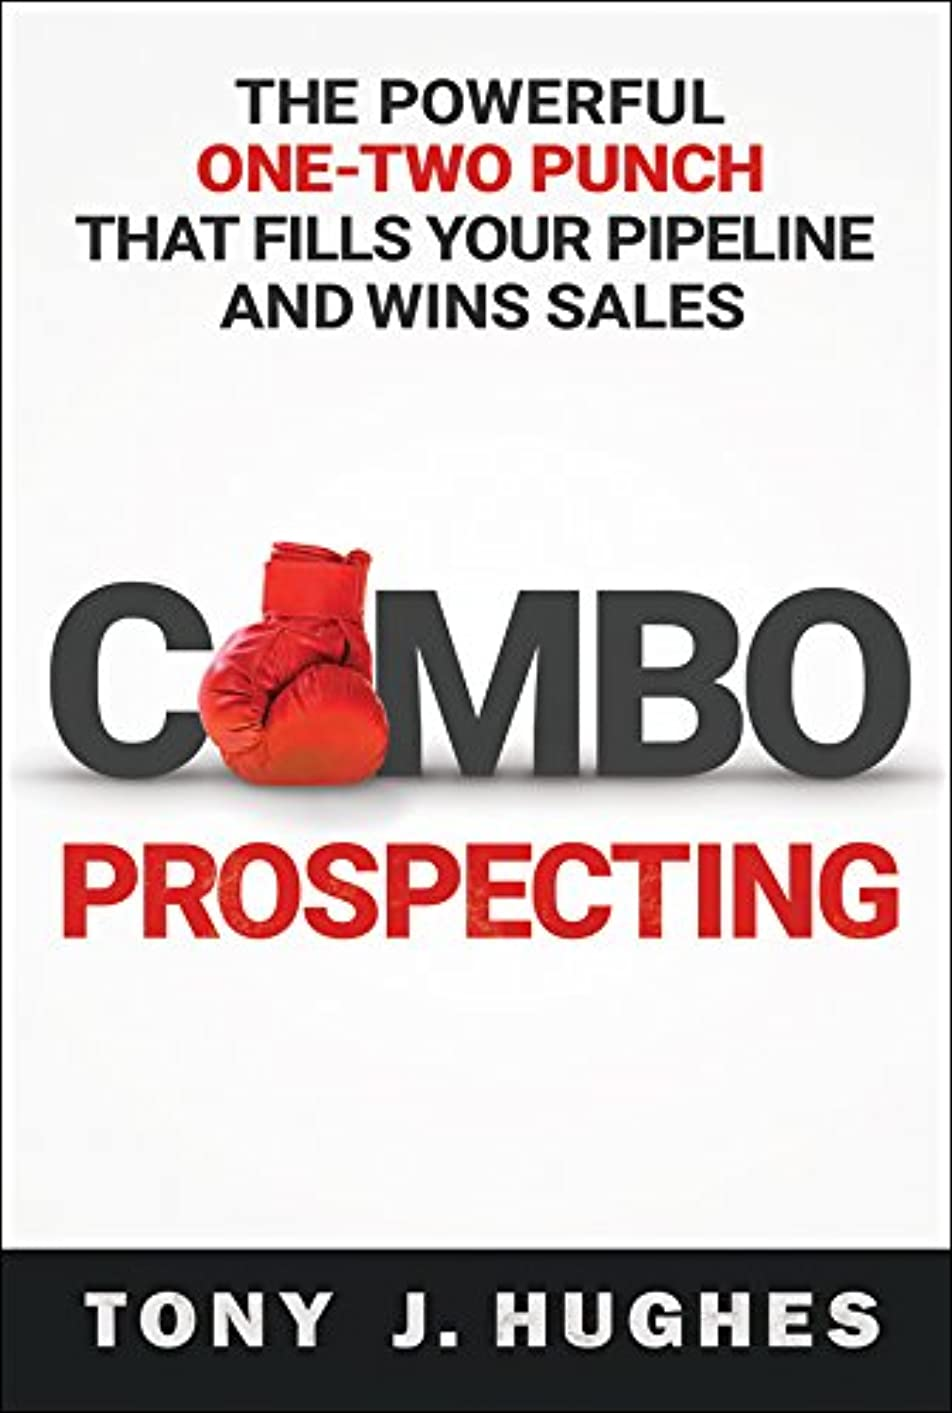 スクランブルイブニング記録Combo Prospecting: The Powerful One-Two Punch That Fills Your Pipeline and Wins Sales (English Edition)